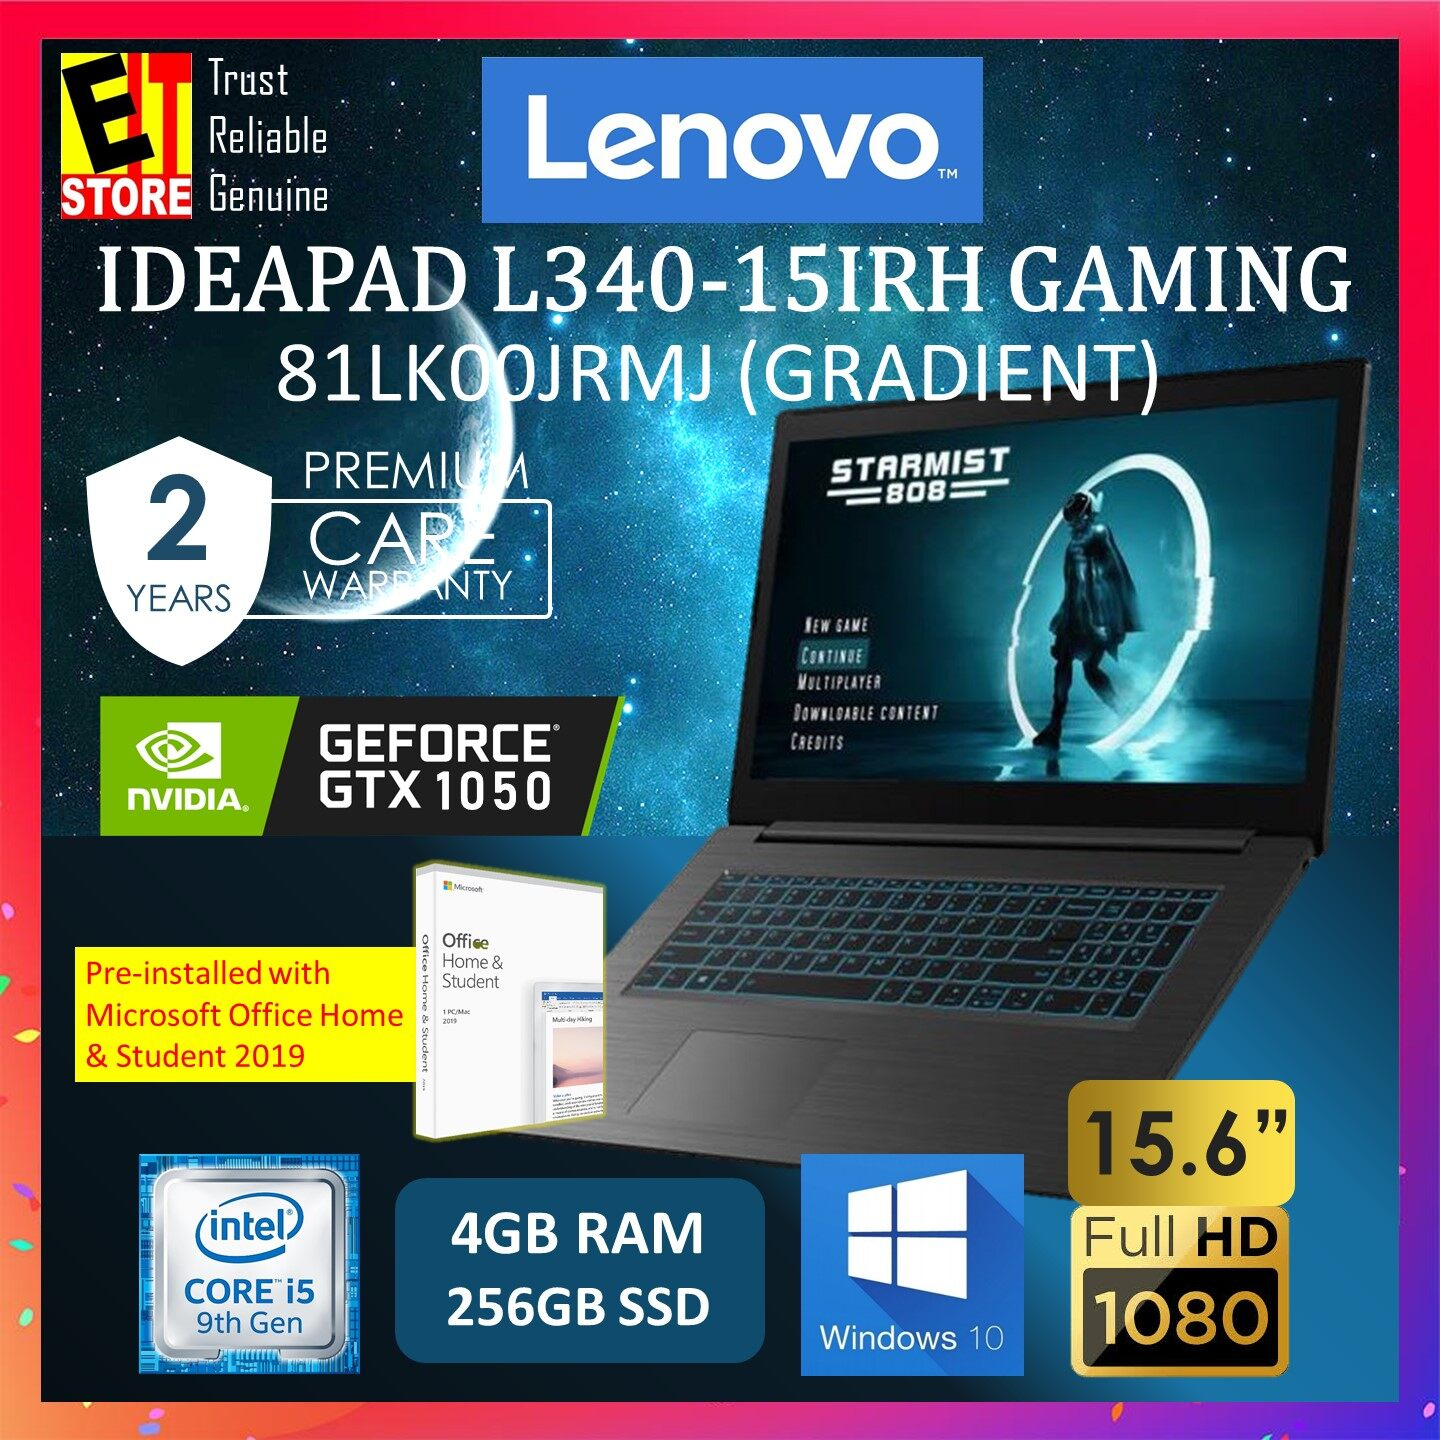 LENOVO IDEAPAD L340-15IRH 81LK00JRMJ GAMING LAPTOP (I5-9300H/4GB/256GB SSD/15.6 FHD/GTX 1050 3GB/W10/2YRS) WITH MS.OFFICE Malaysia